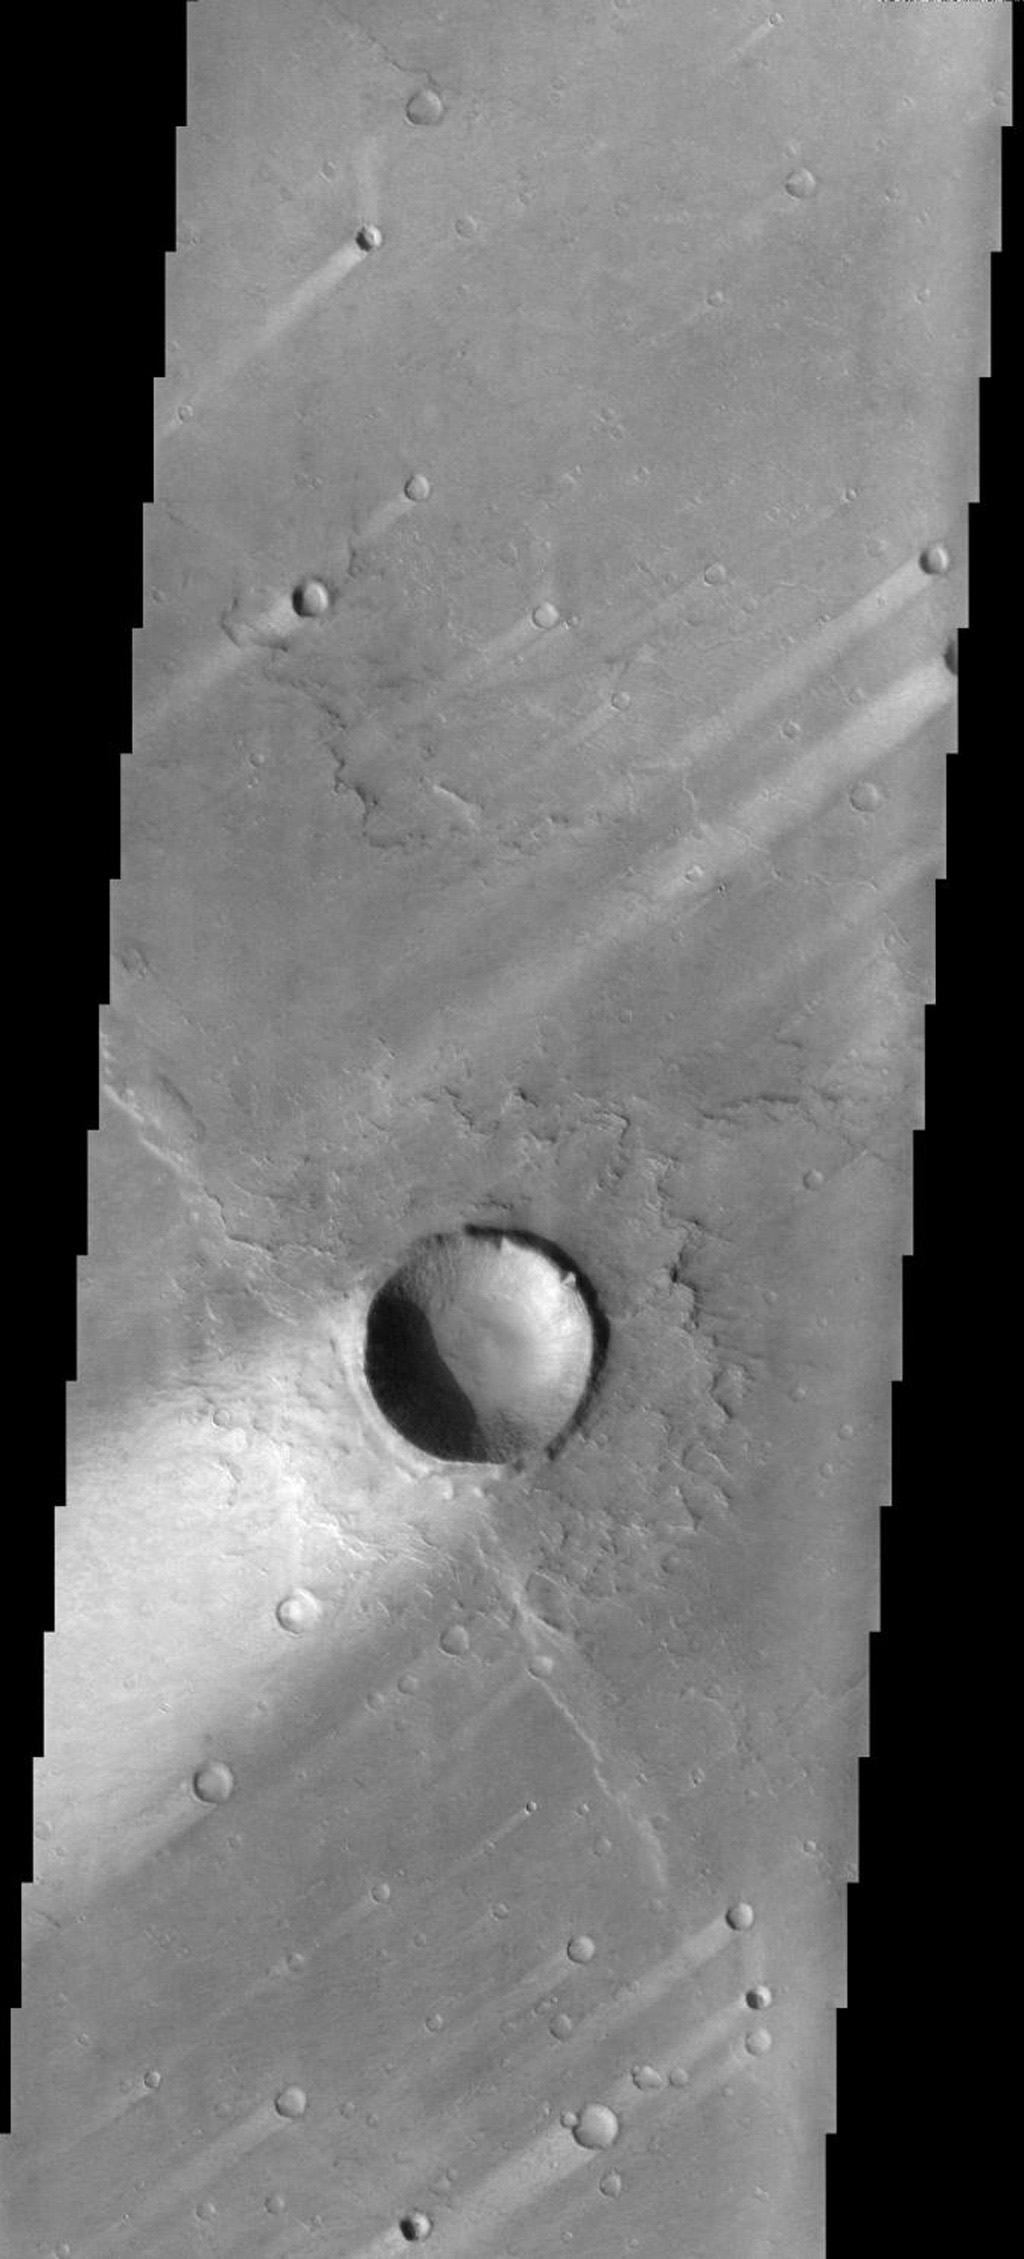 Syrtis Major Windstreaks